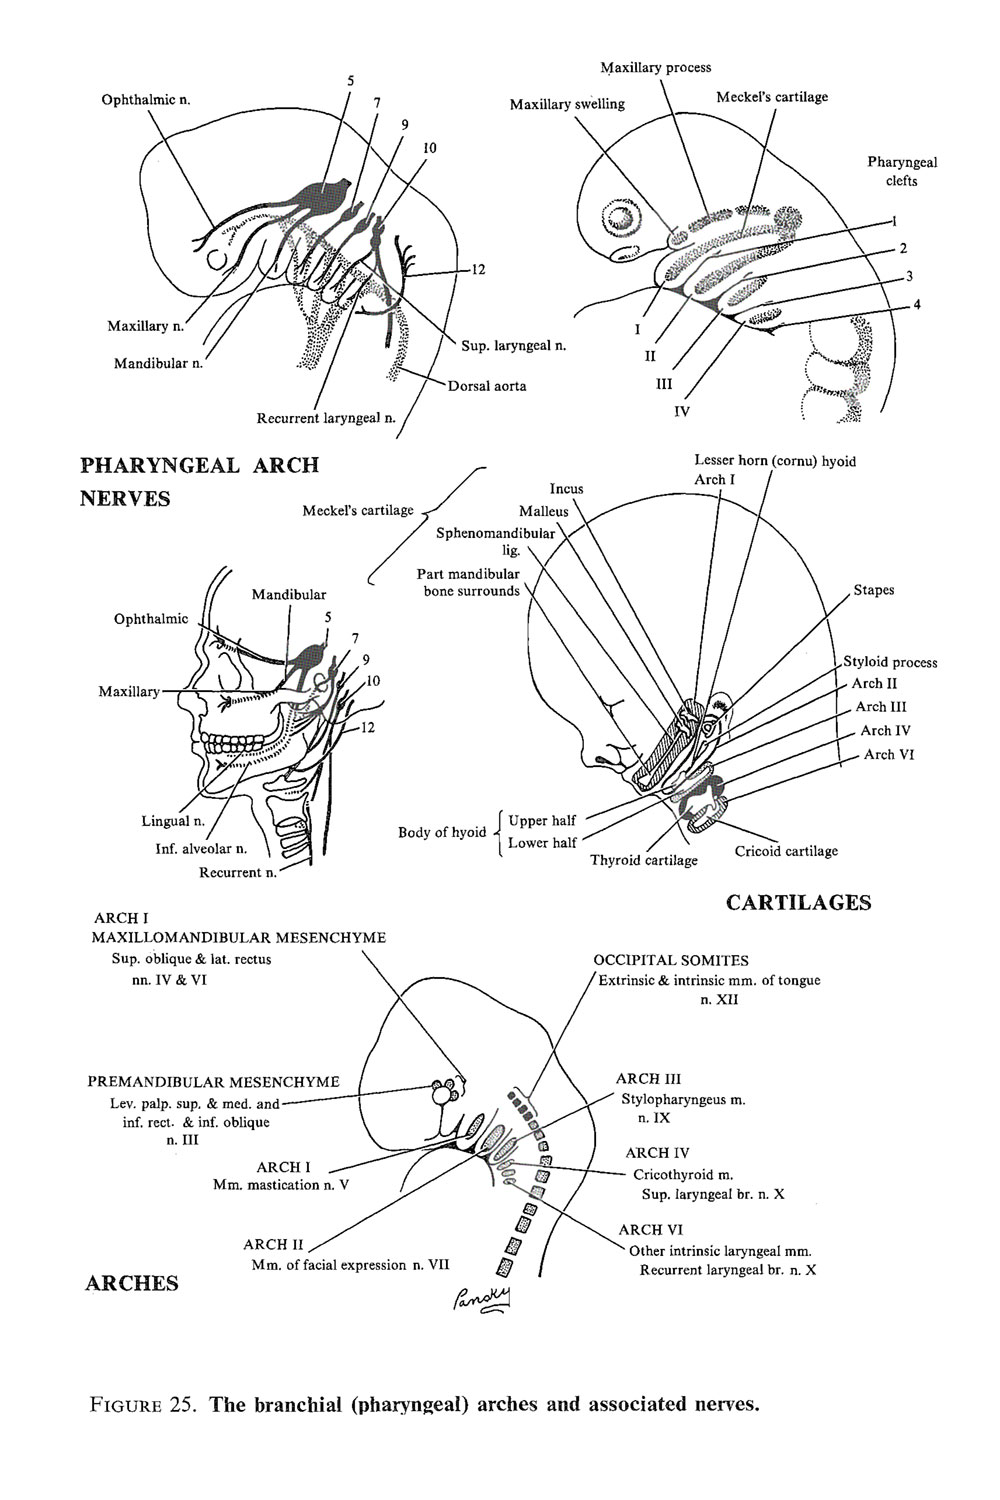 the branchial apparatus:  the branchial (pharyngeal) arches: image #2